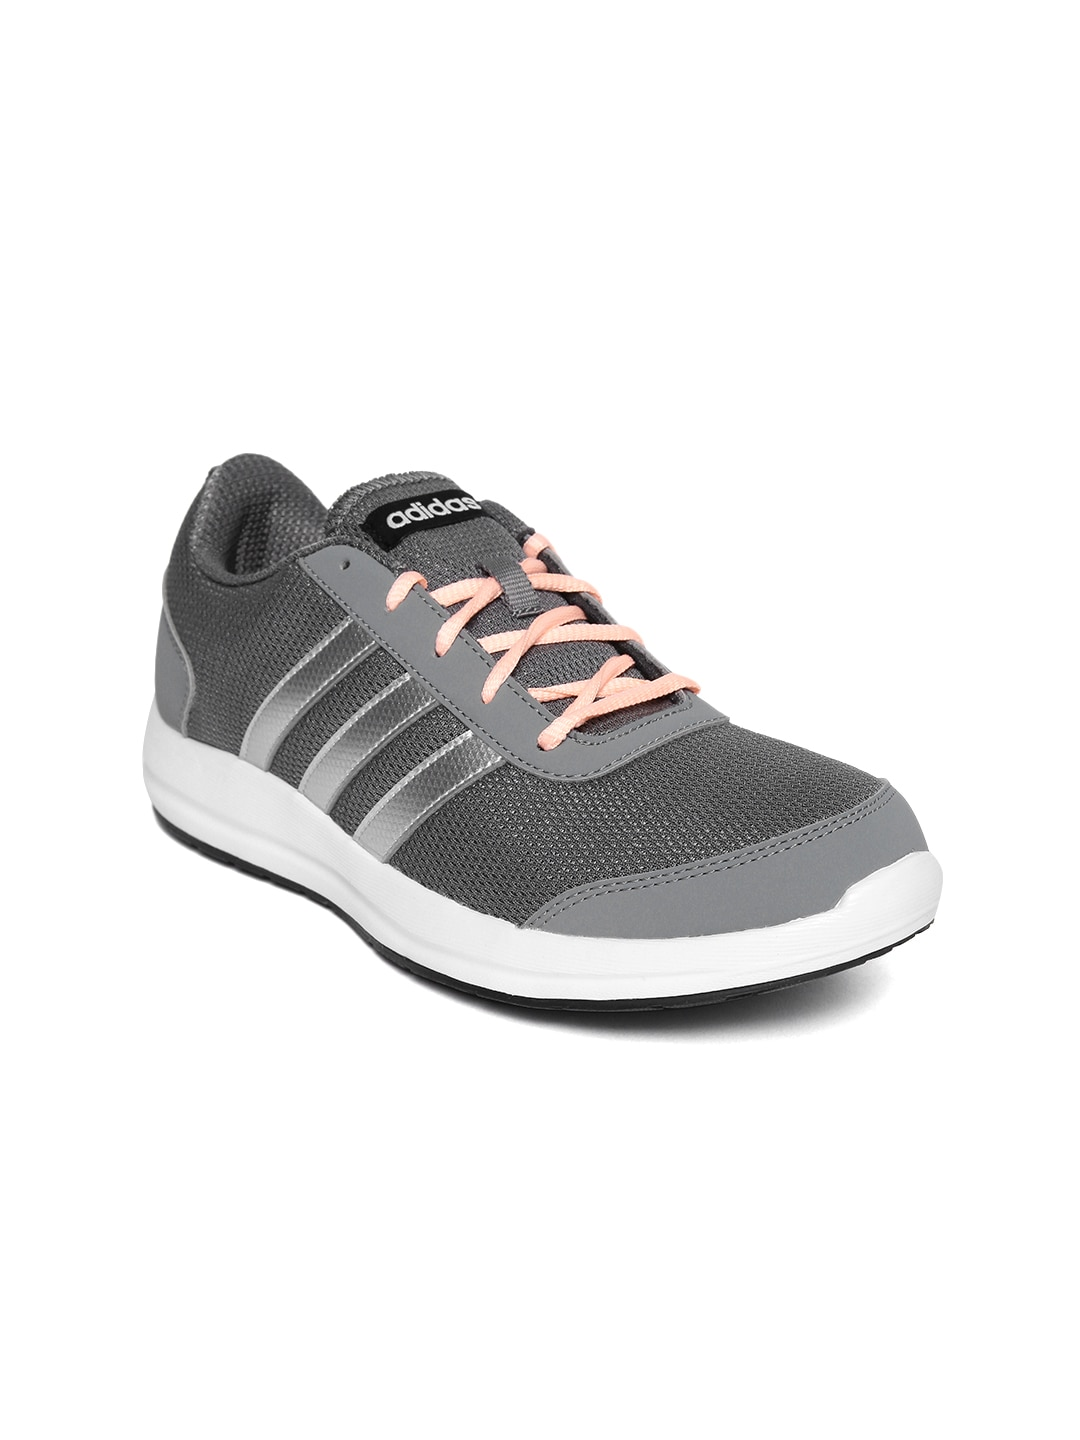 e7faea1dd6de2 Adidas Shoes - Buy Adidas Shoes for Men   Women Online - Myntra